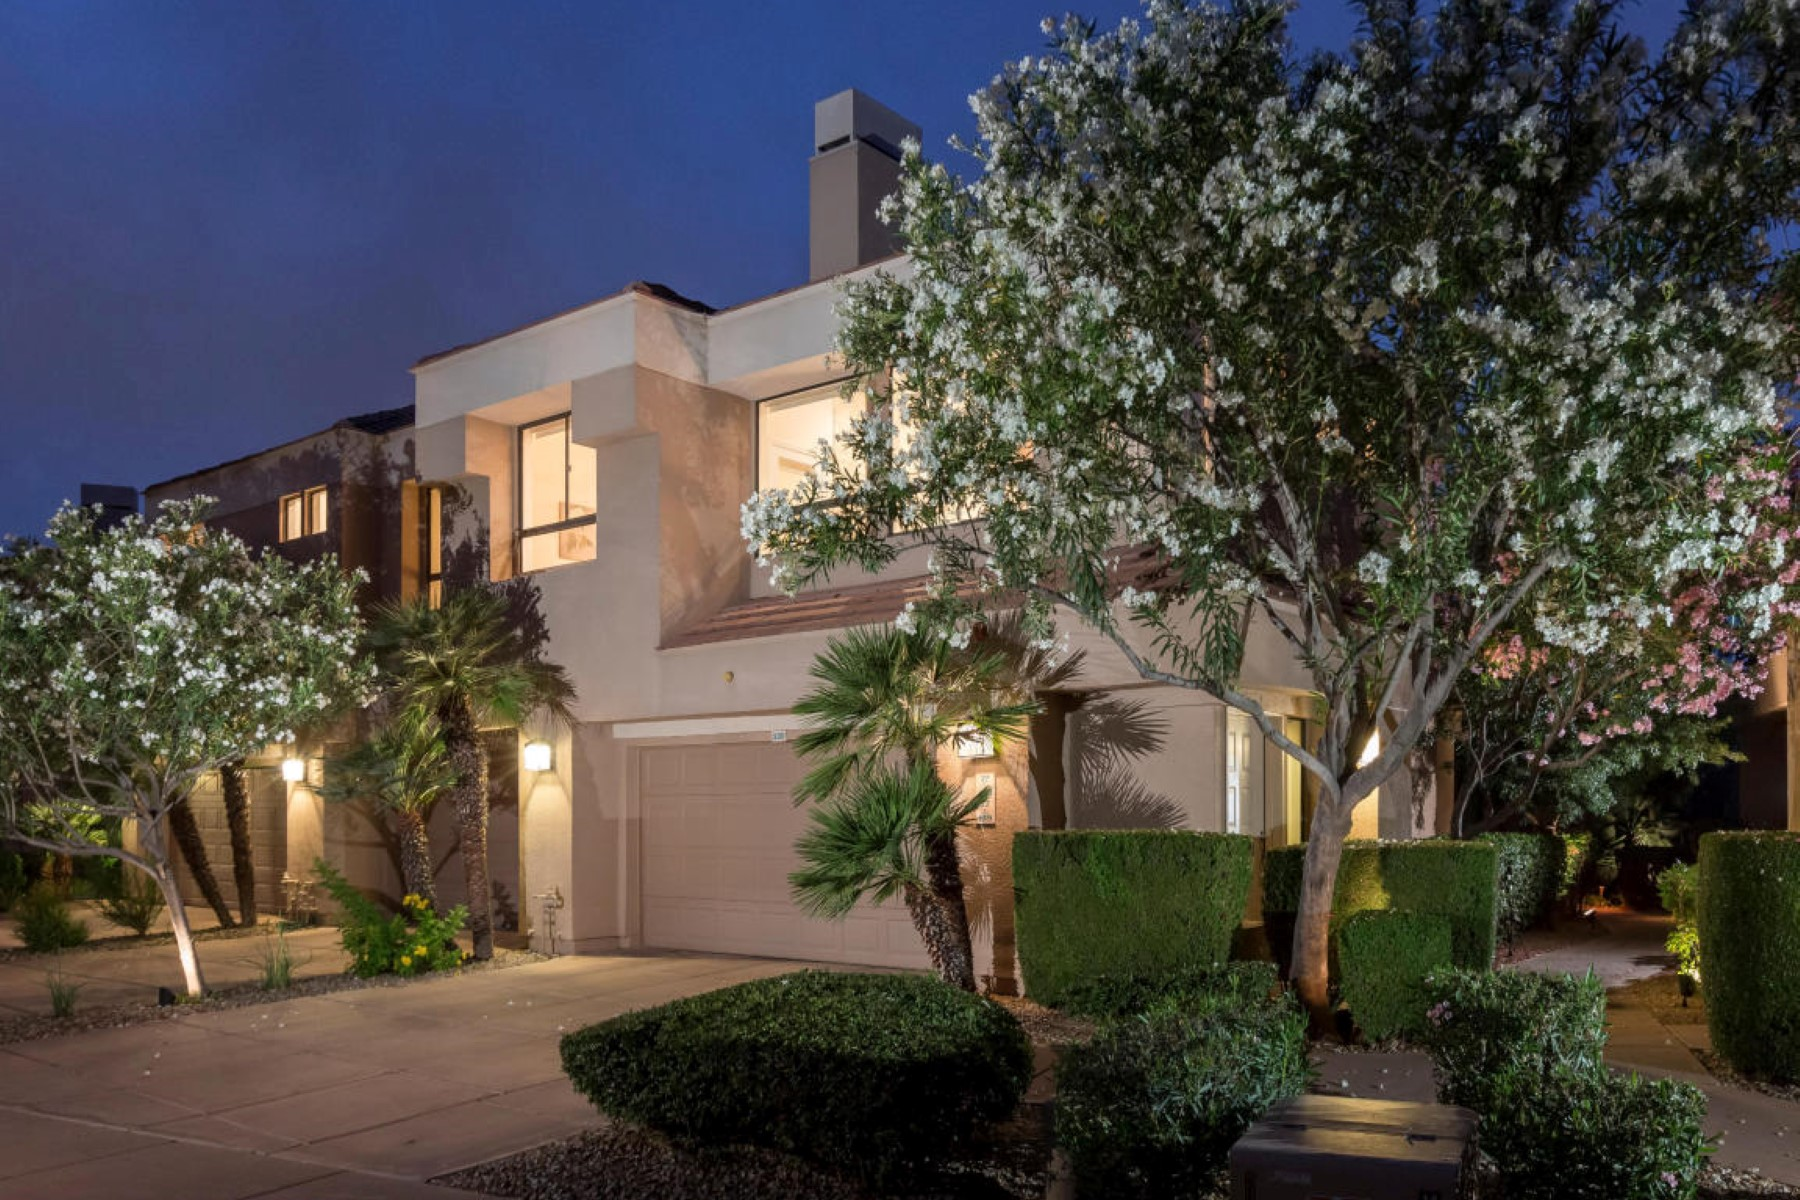 Property For Sale at Remodel Condo in sought after and luxurious Gainey Ranch Scottsdale